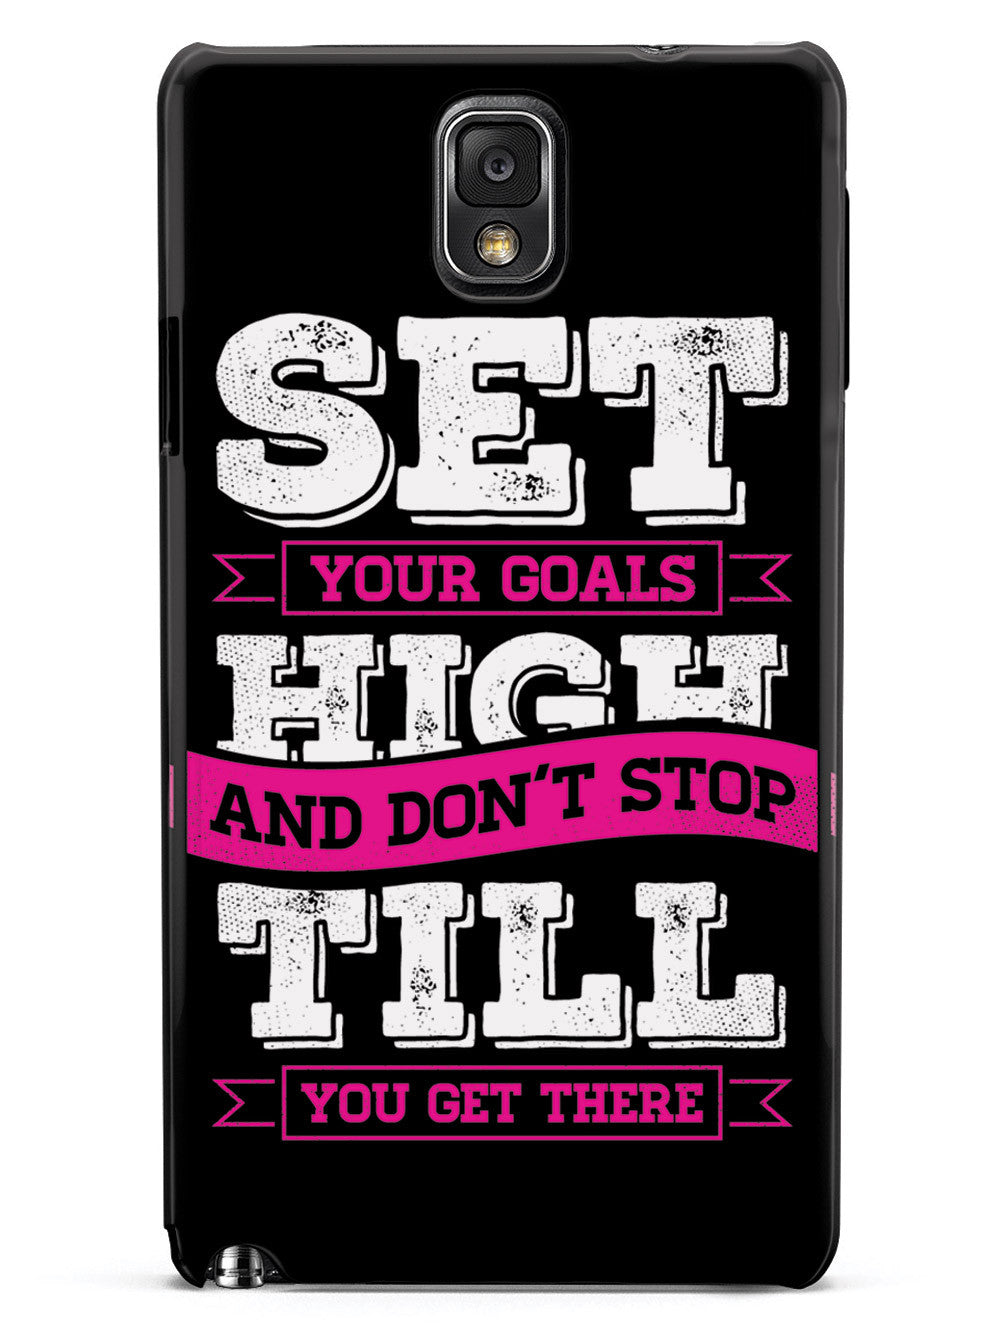 Set Your Goals High, Don't Stop - Black Case